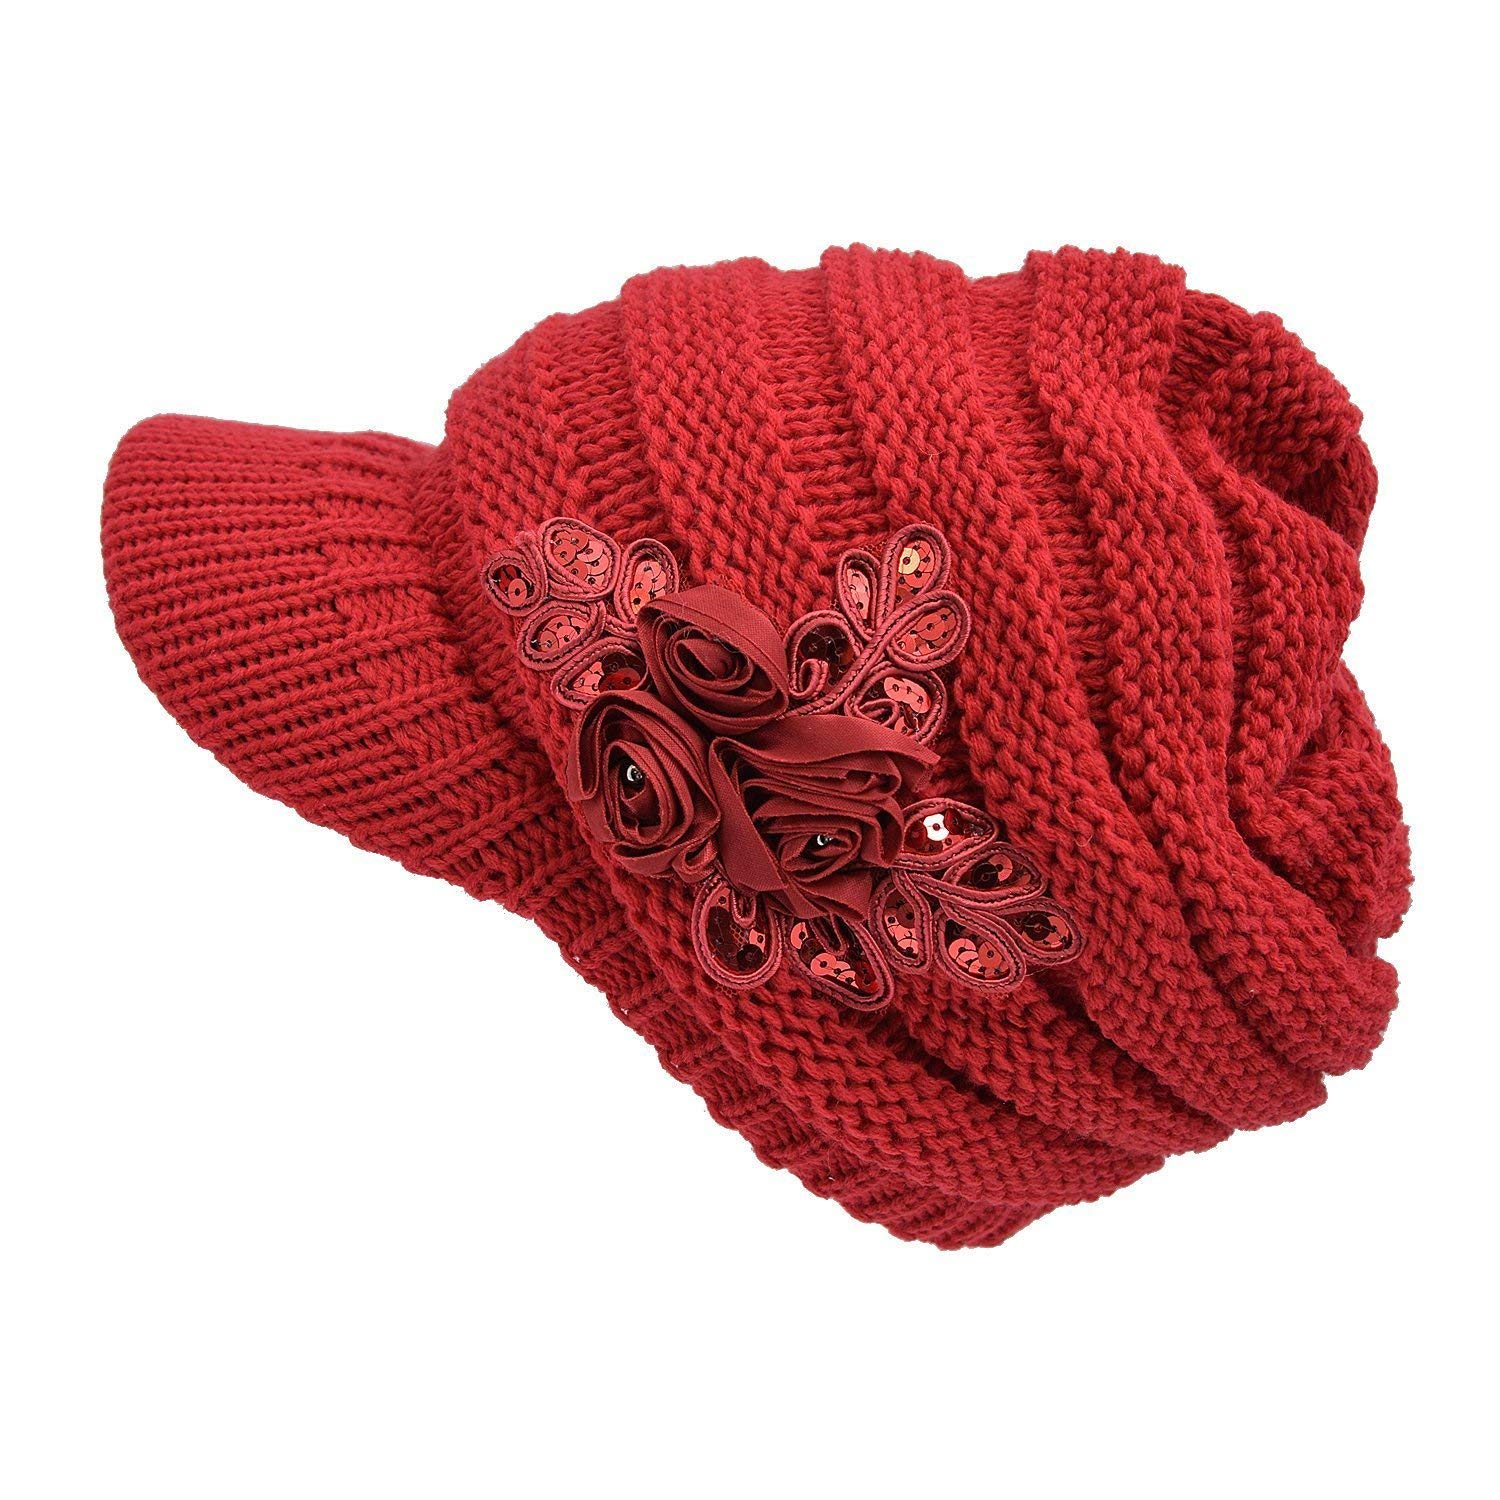 db3a6181735 YSense Women Winter Warm Cable Knit Beanie Hats Newsboy Cap Visor with  Sequined Flower 001-